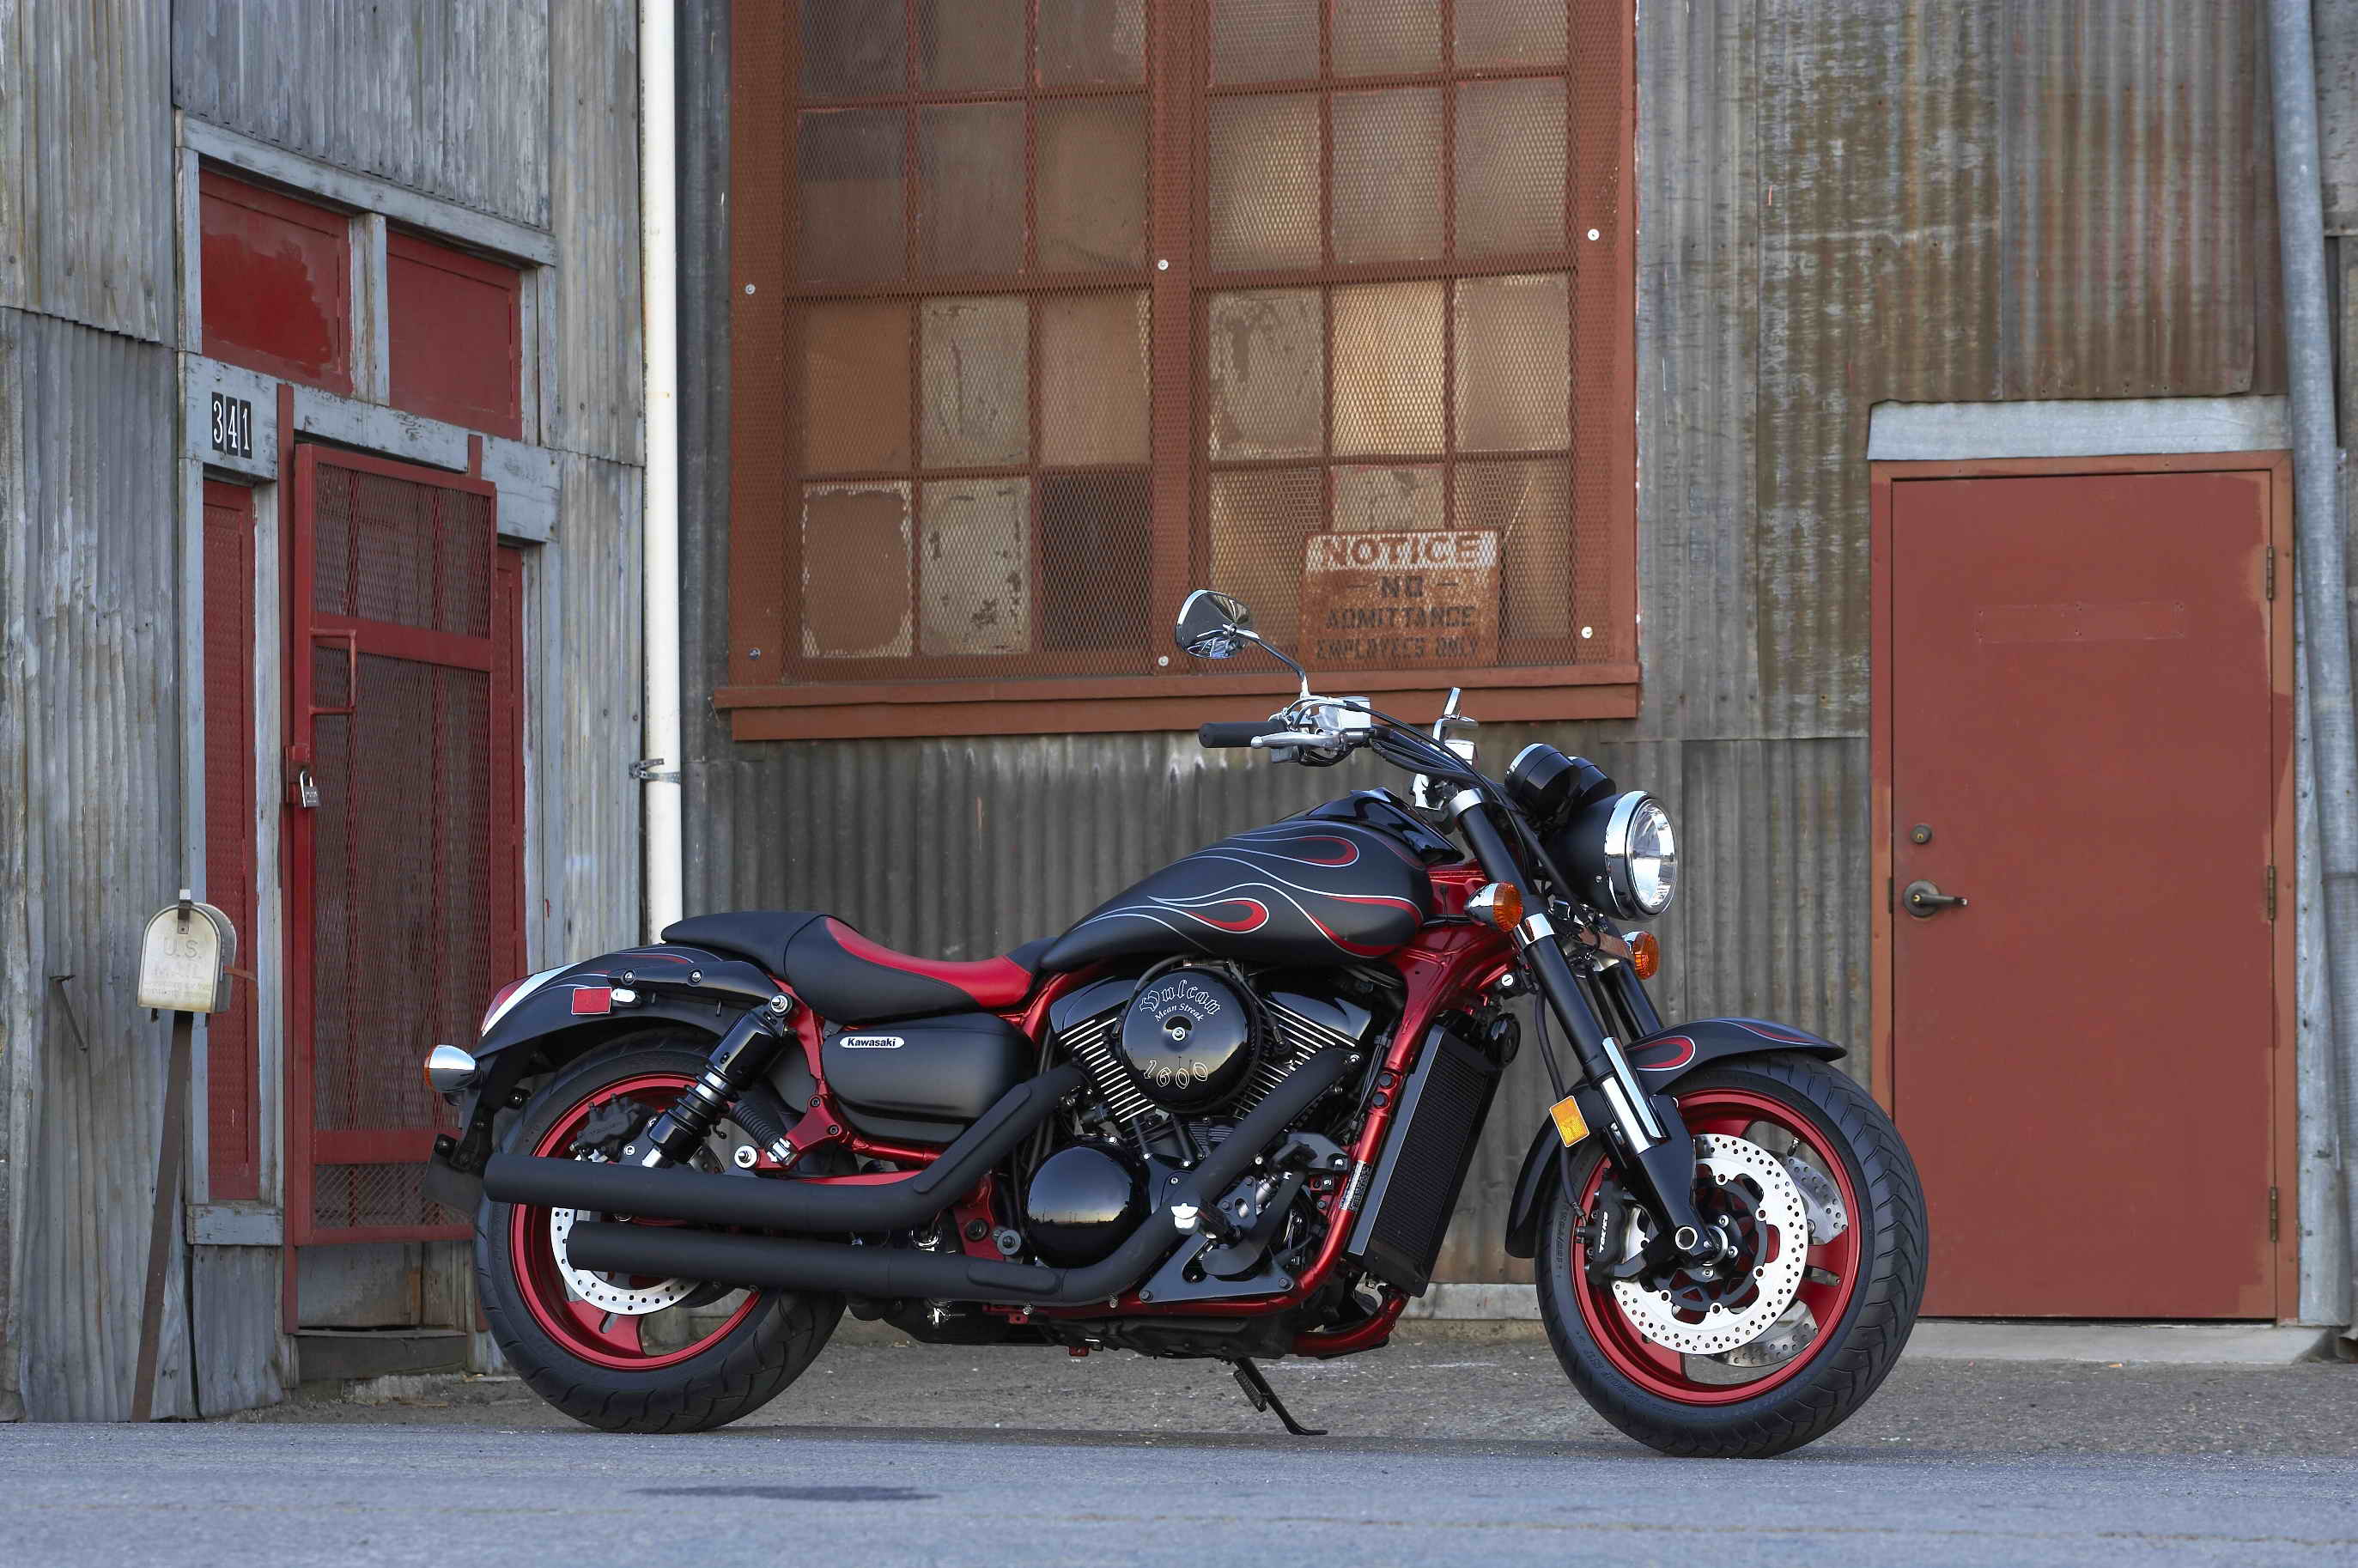 2007 Kawasaki Vulcan 1600 Mean Streak Top Speed